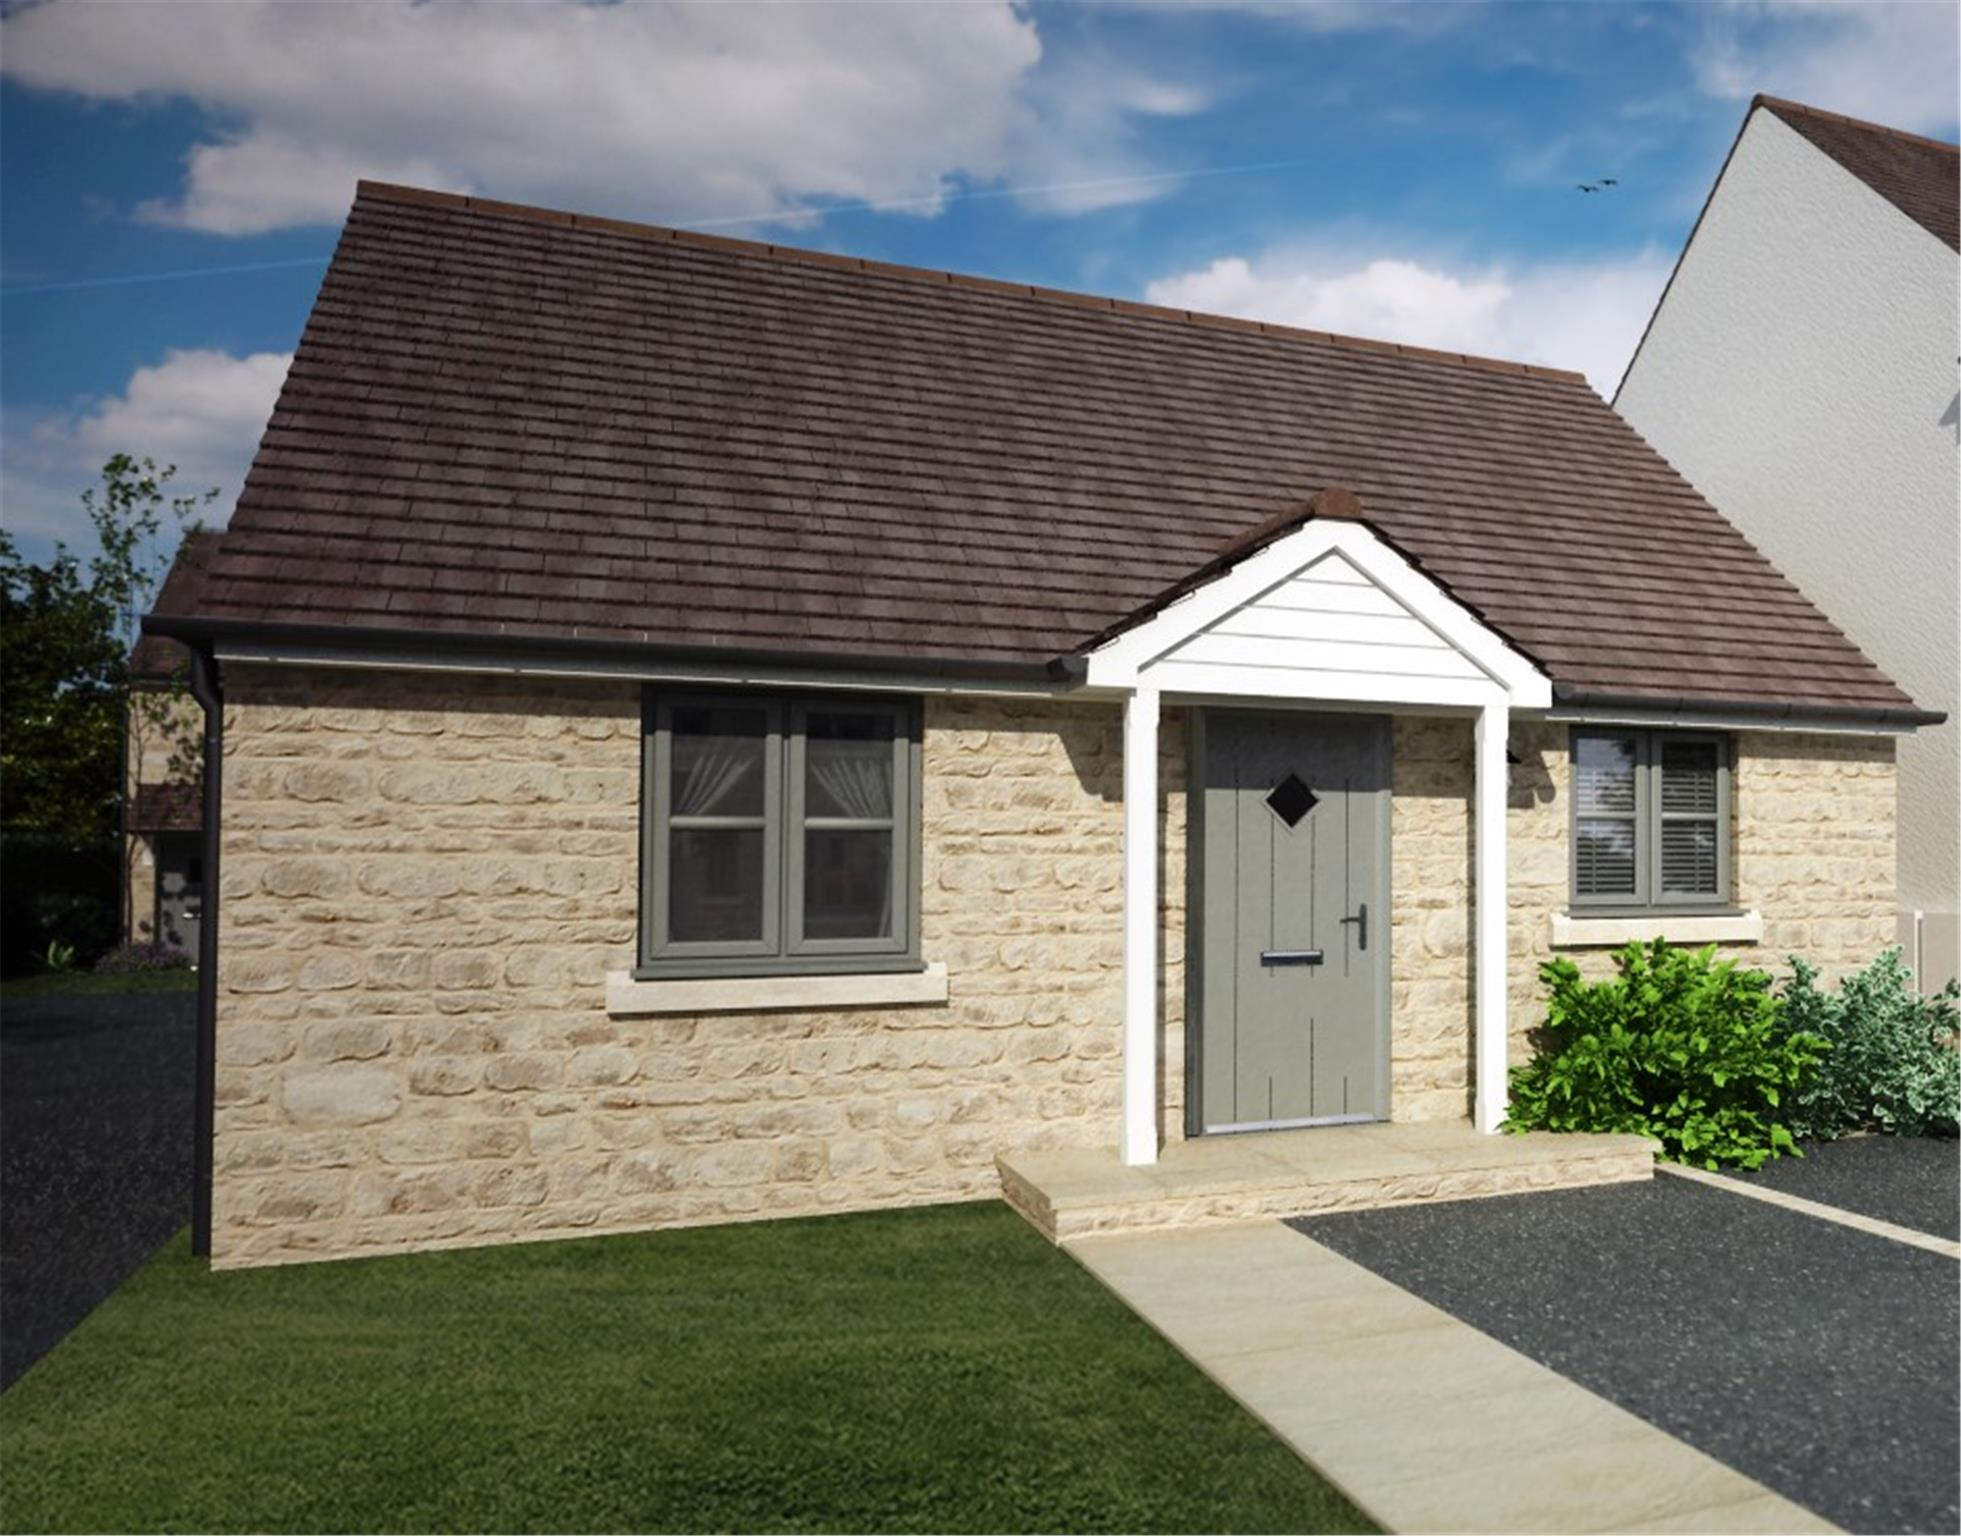 Plot 9, The Charlbury, Blunsdon Meadow, Swindon SN25